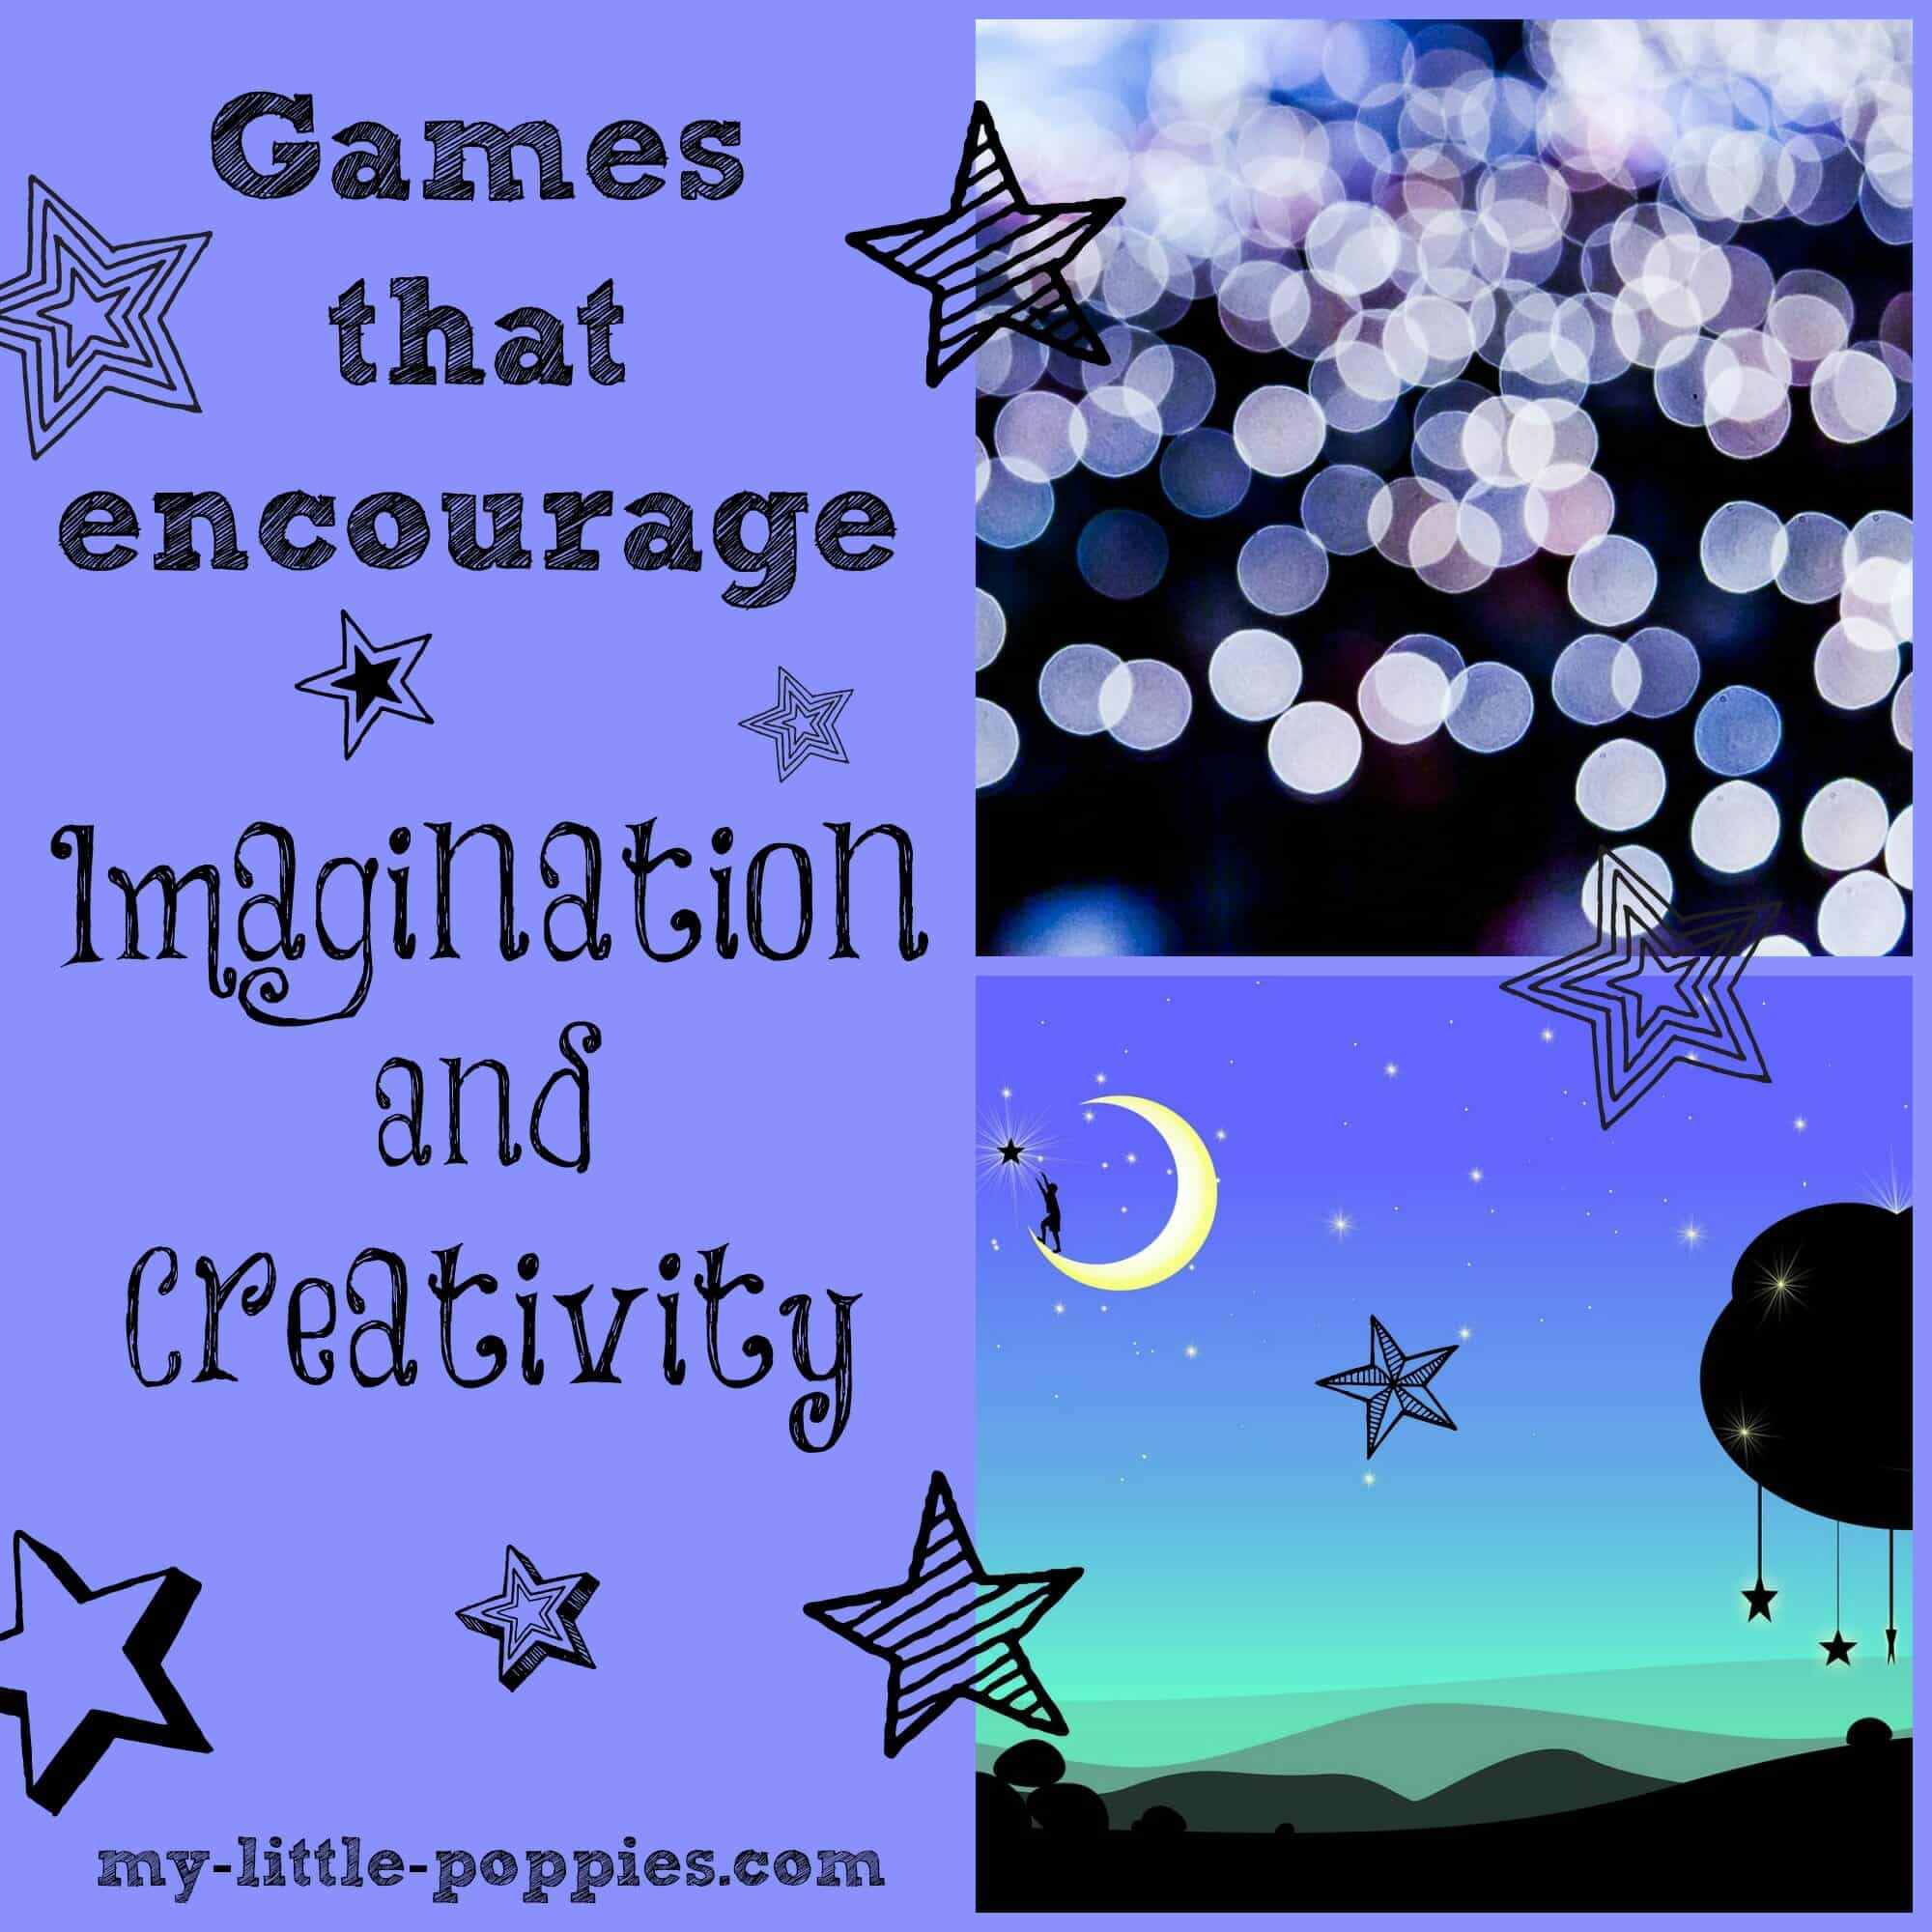 Language Arts Games, Games that encourage imagination and creativity, 20+ of the best fantastic reading and language arts board games for your family, homeschool, educational games, play based learning, literacy games, vocabulary games, reading games, language games, speech and language games, homeschooler, homeschooling, parenting, resources, hands-on learning, experiential learning, board games, tabletop games